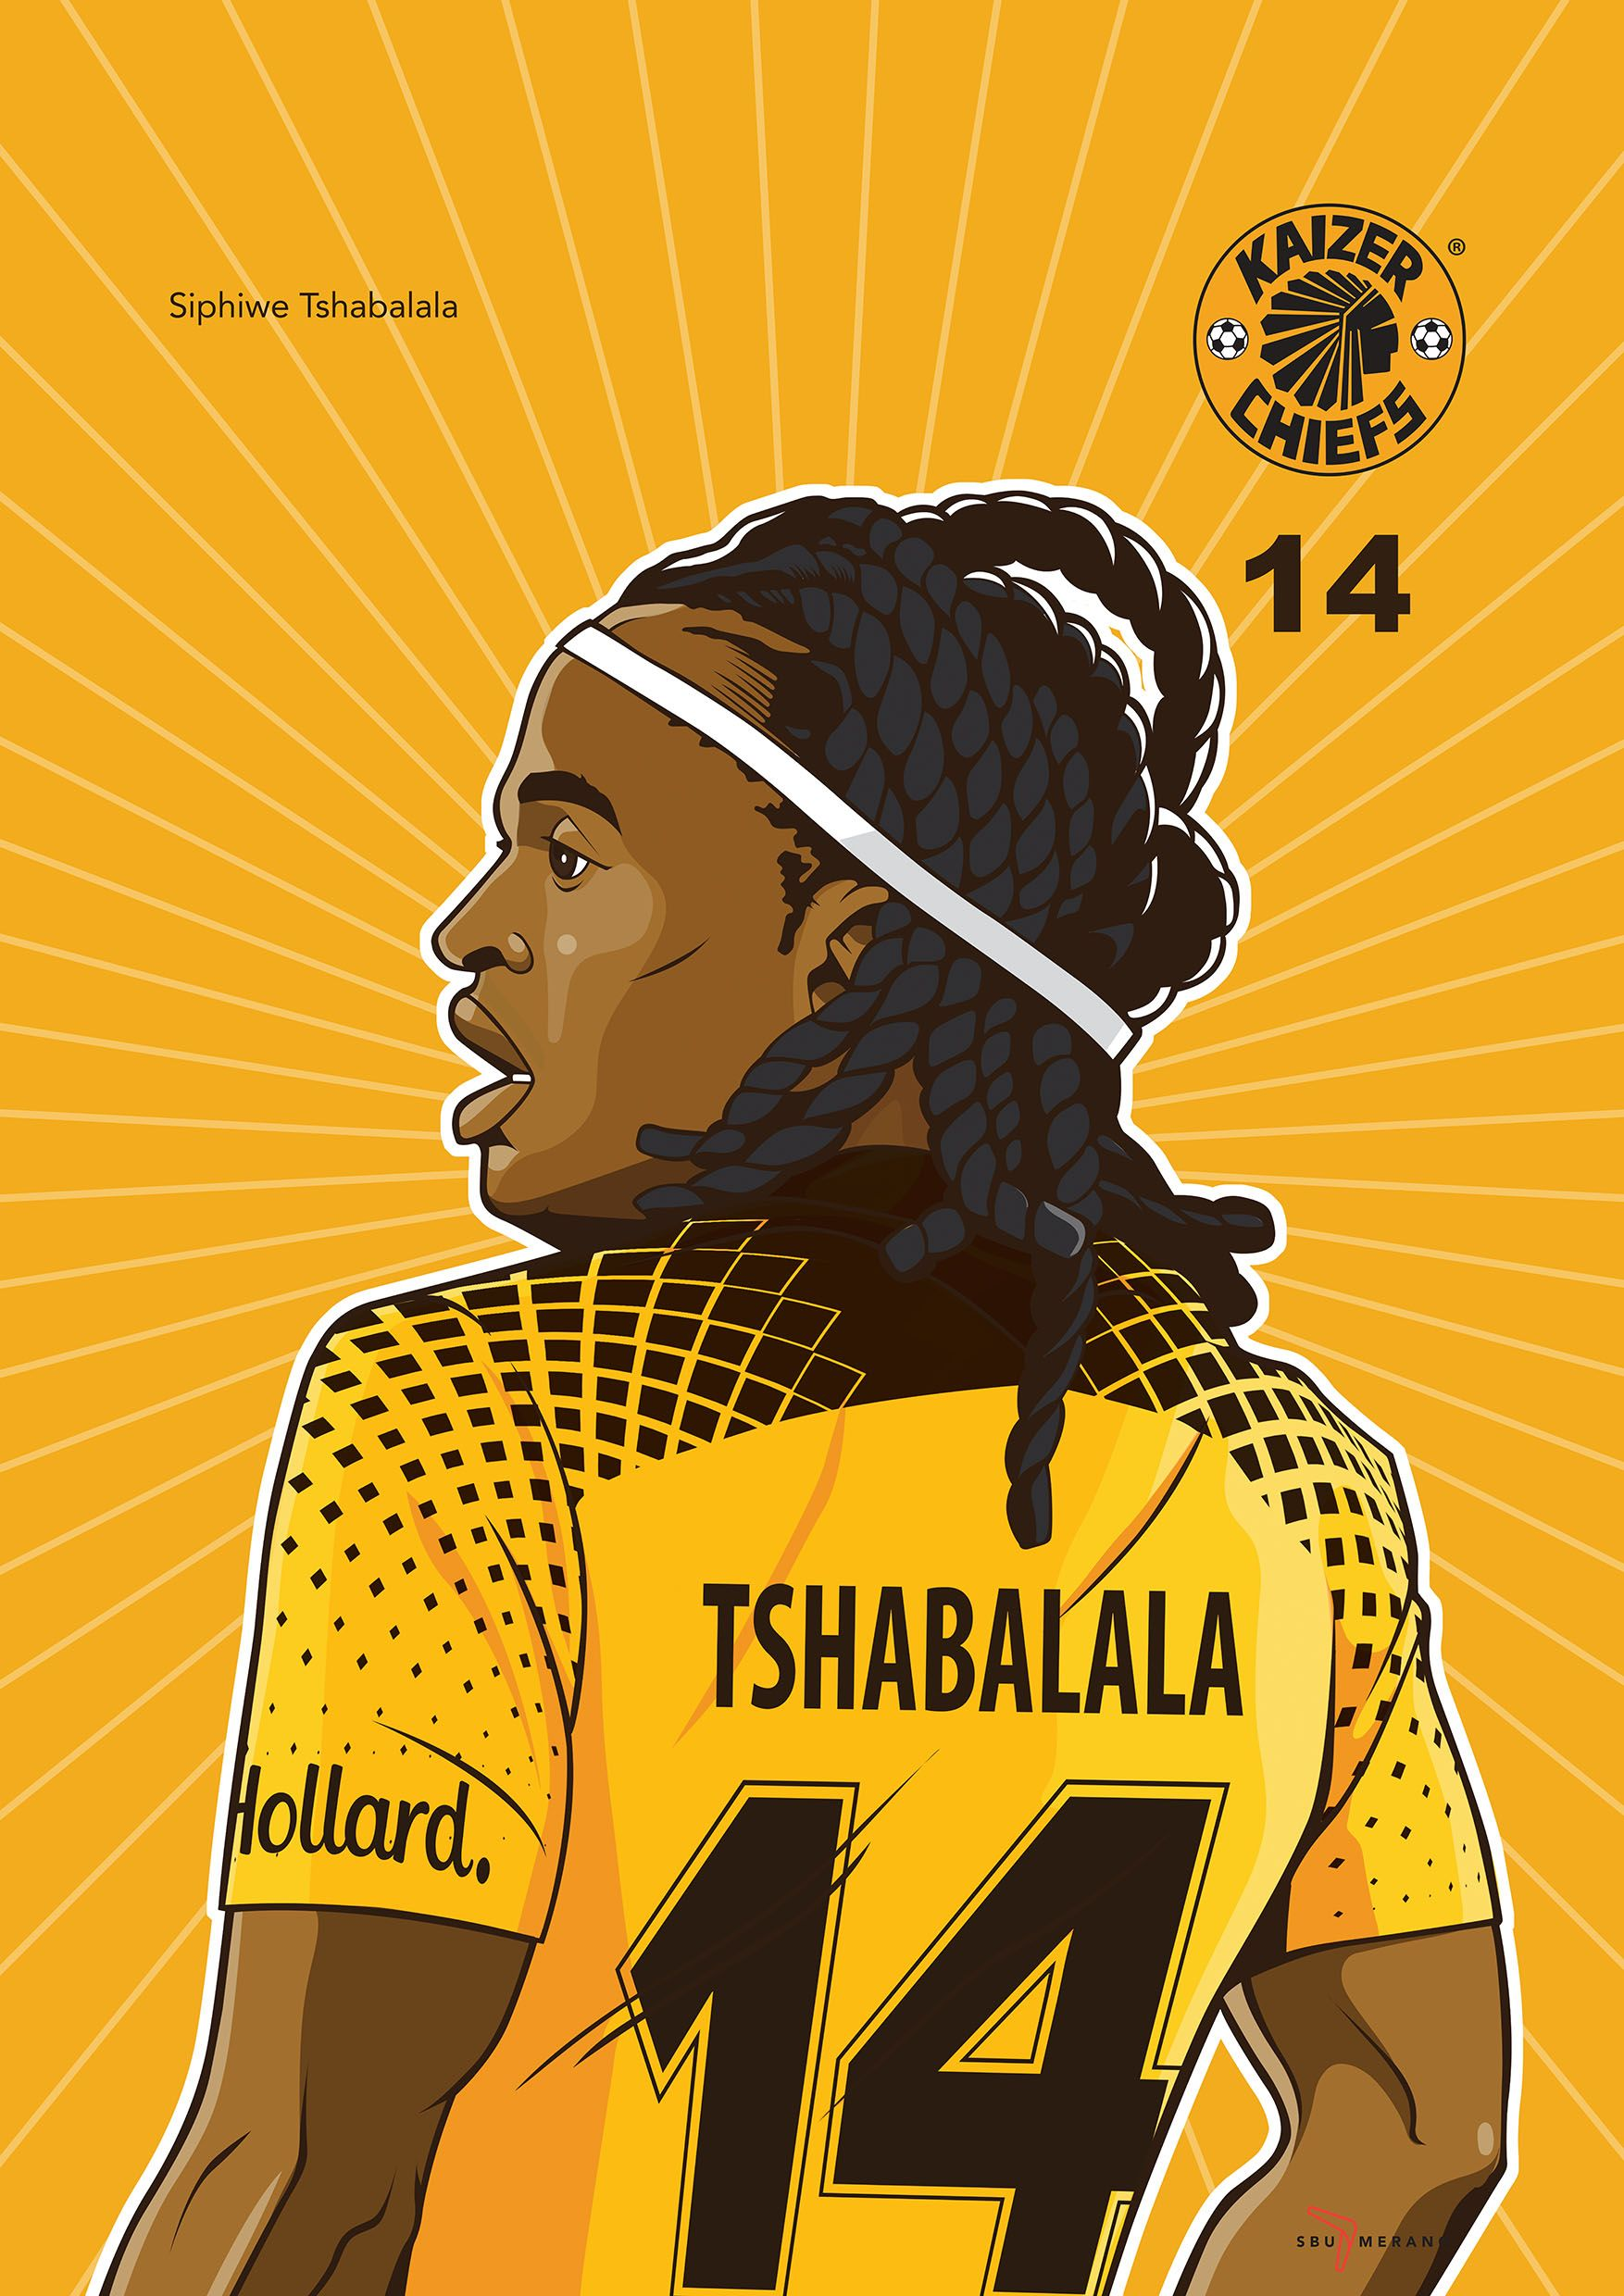 Iwisa Kaizer Chiefs Players Poster Collection Siphiwe Tshabalala ... a6931eda8